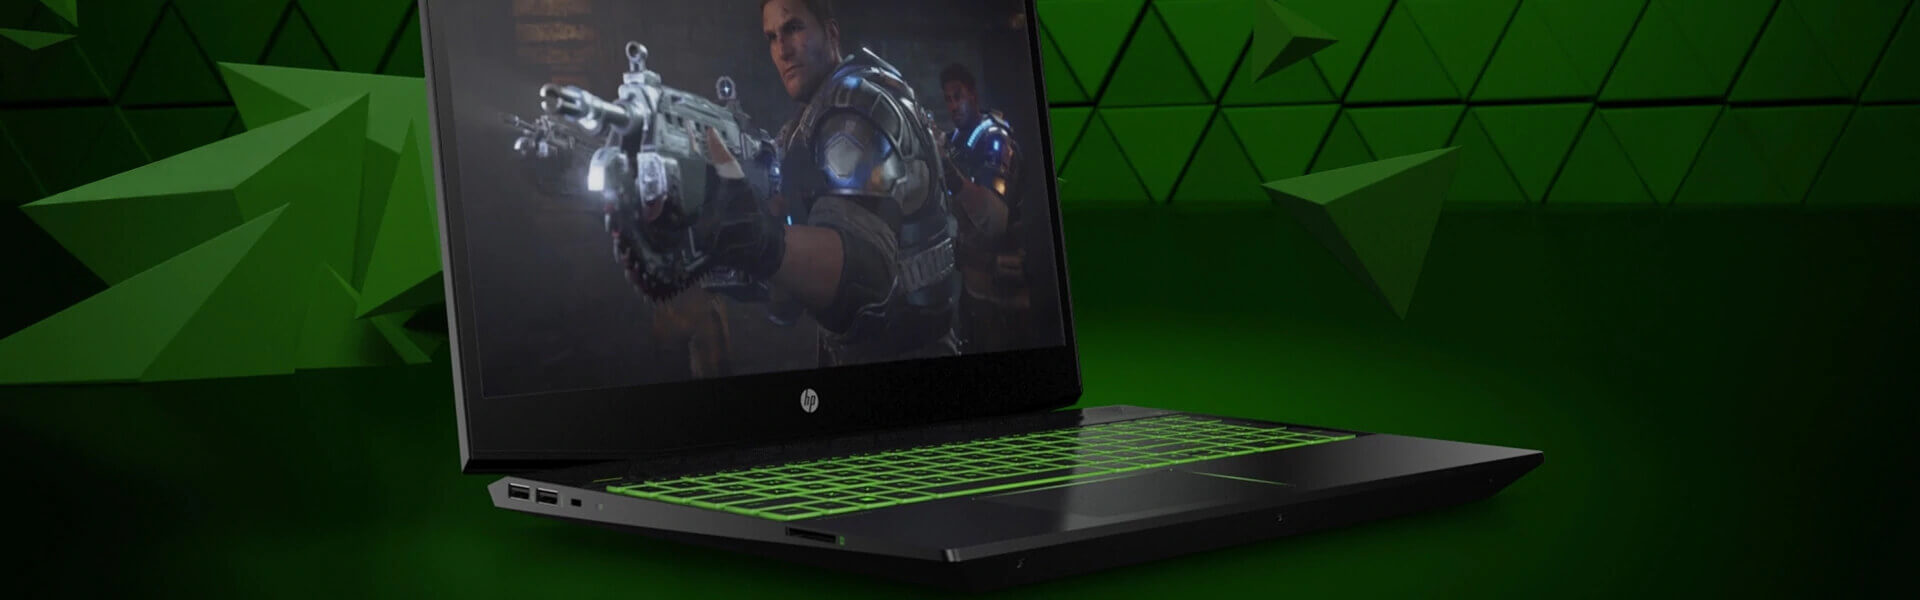 Hp Pavilion Gaming Laptops Hp Online Store